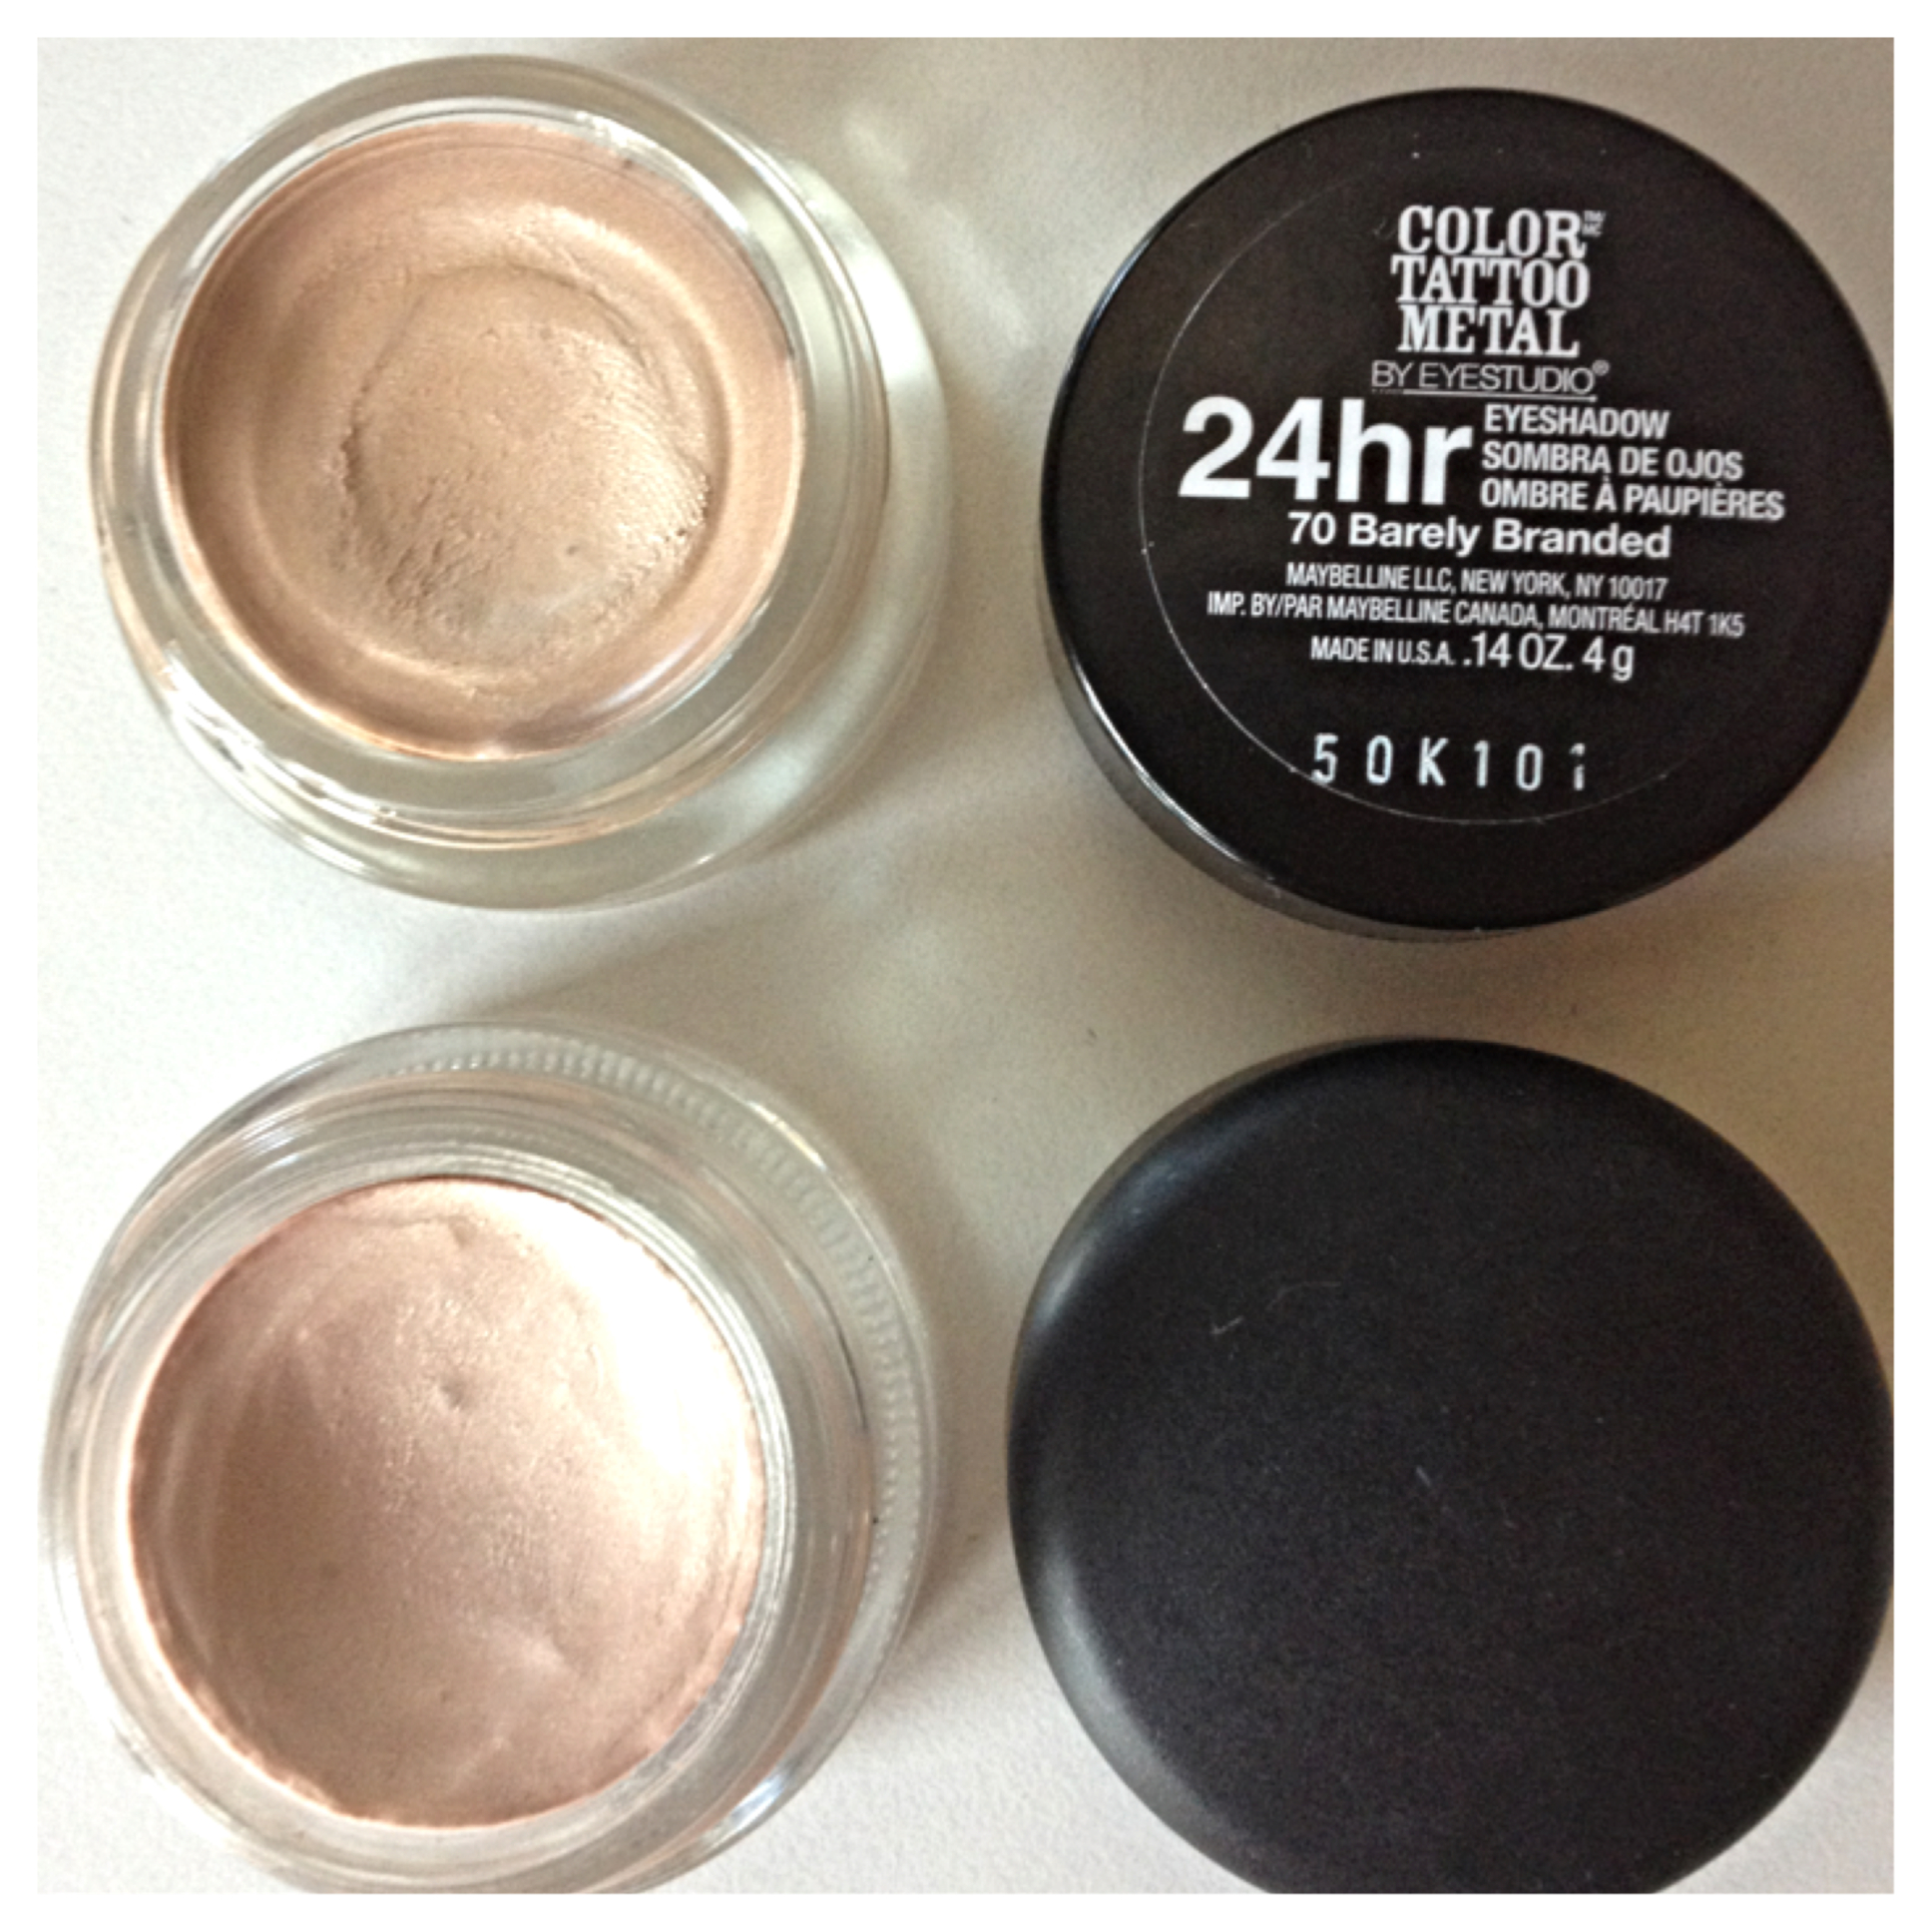 We Found A Dupe For MAC's Bare Study Paint Pot ... - SheFinds